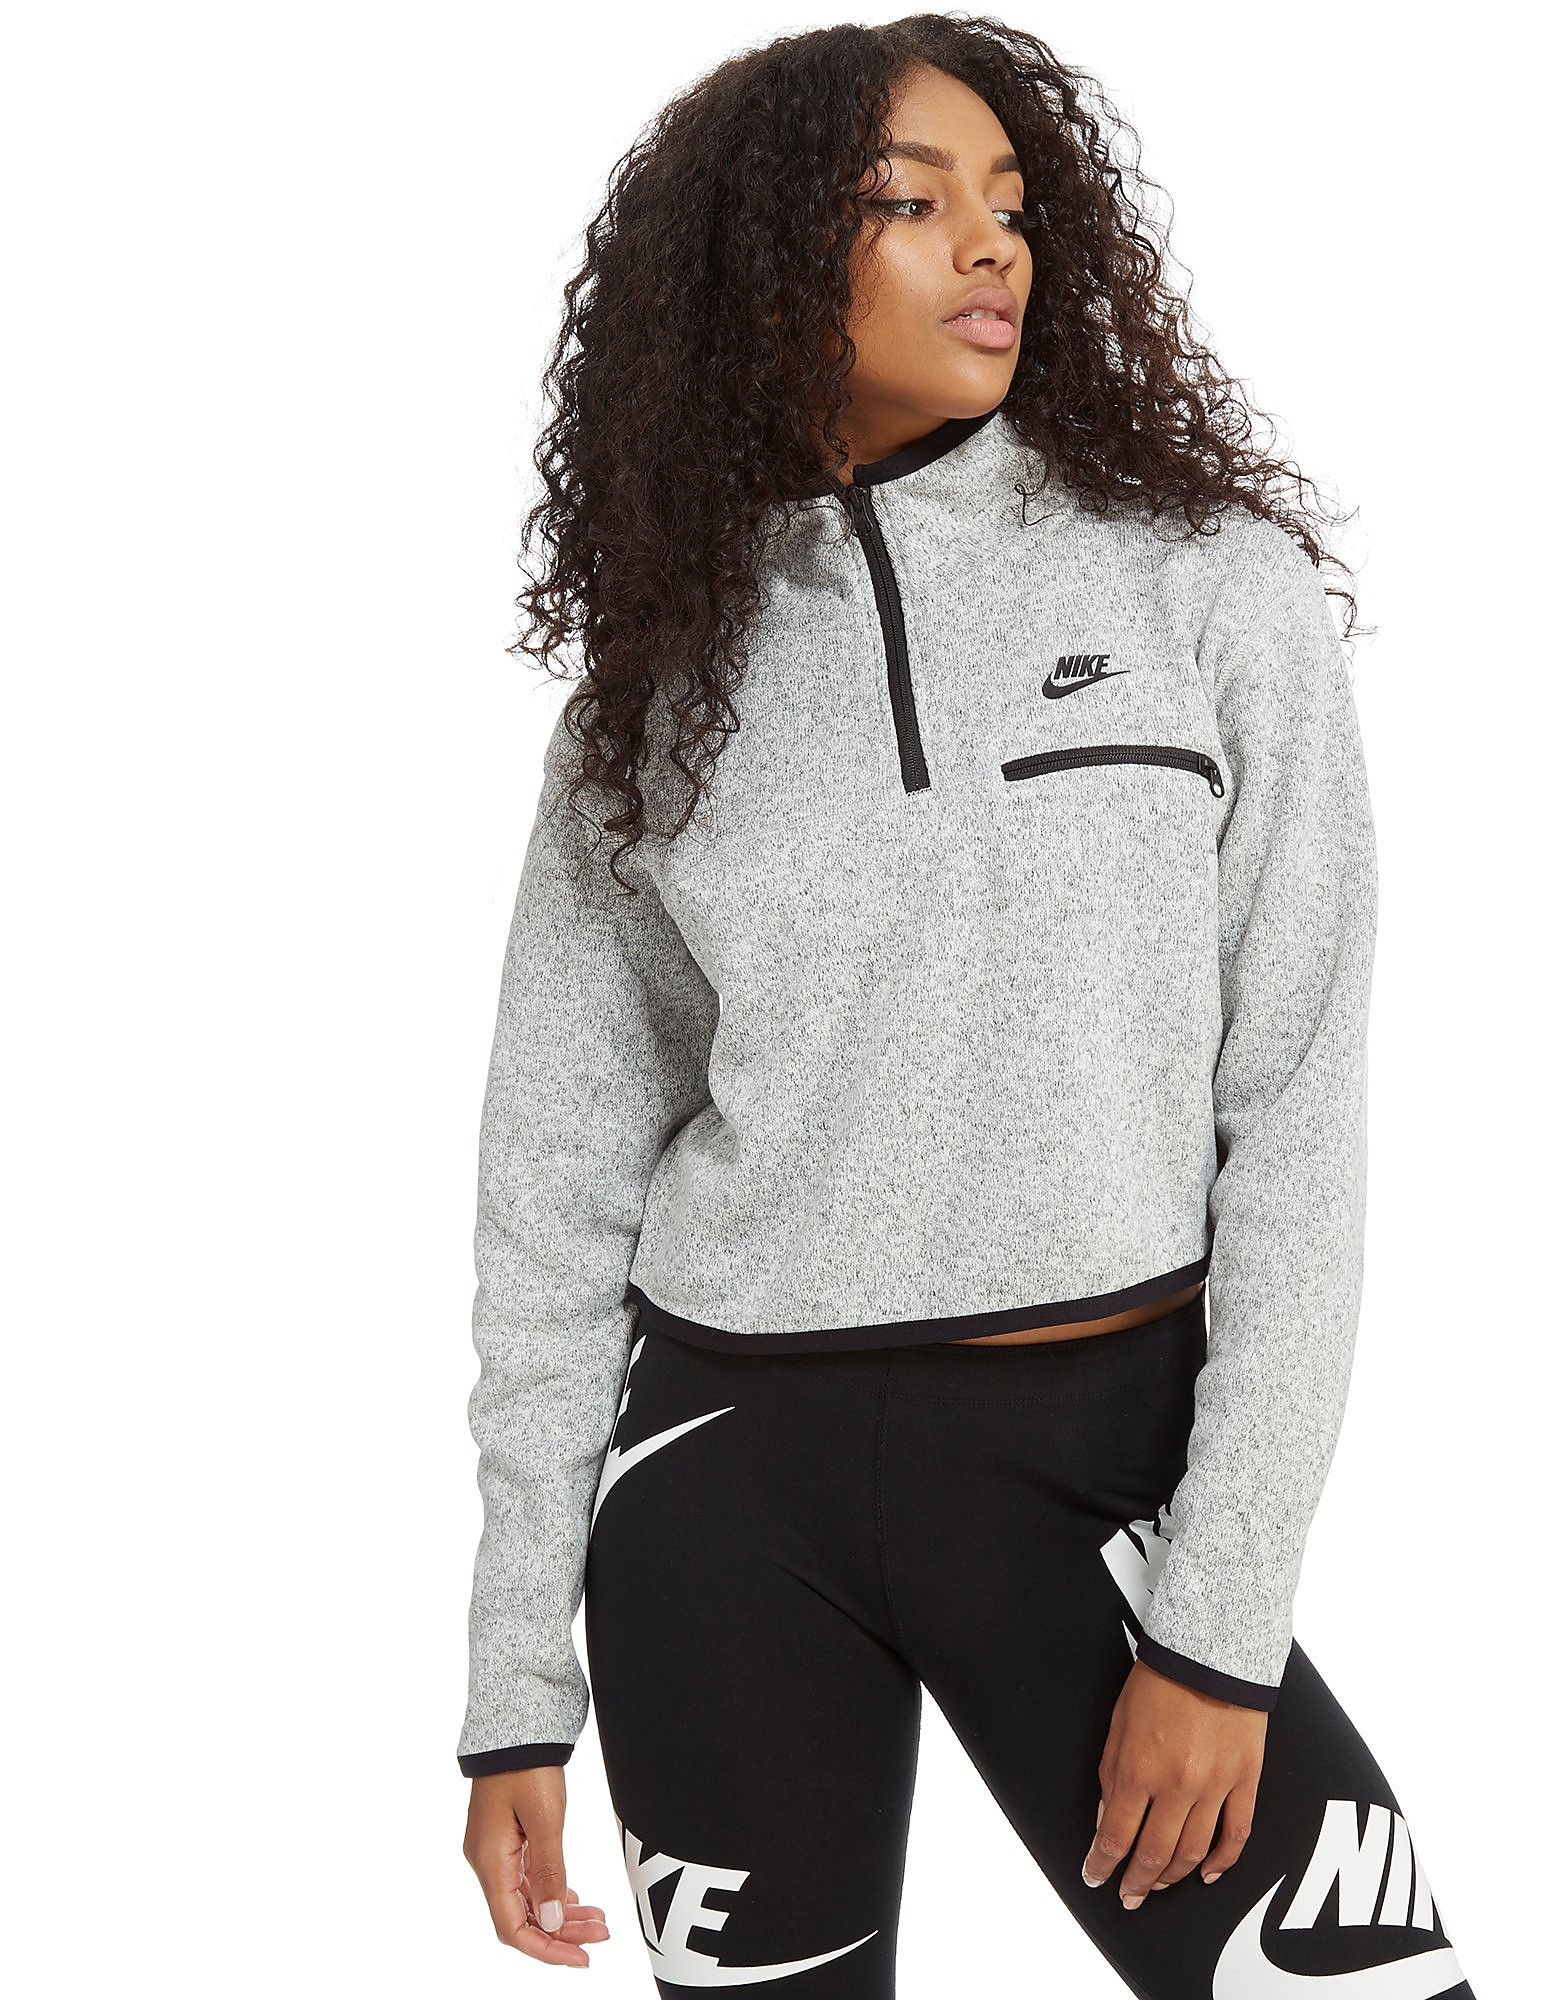 Nike Summit Langarm Sweatshirt